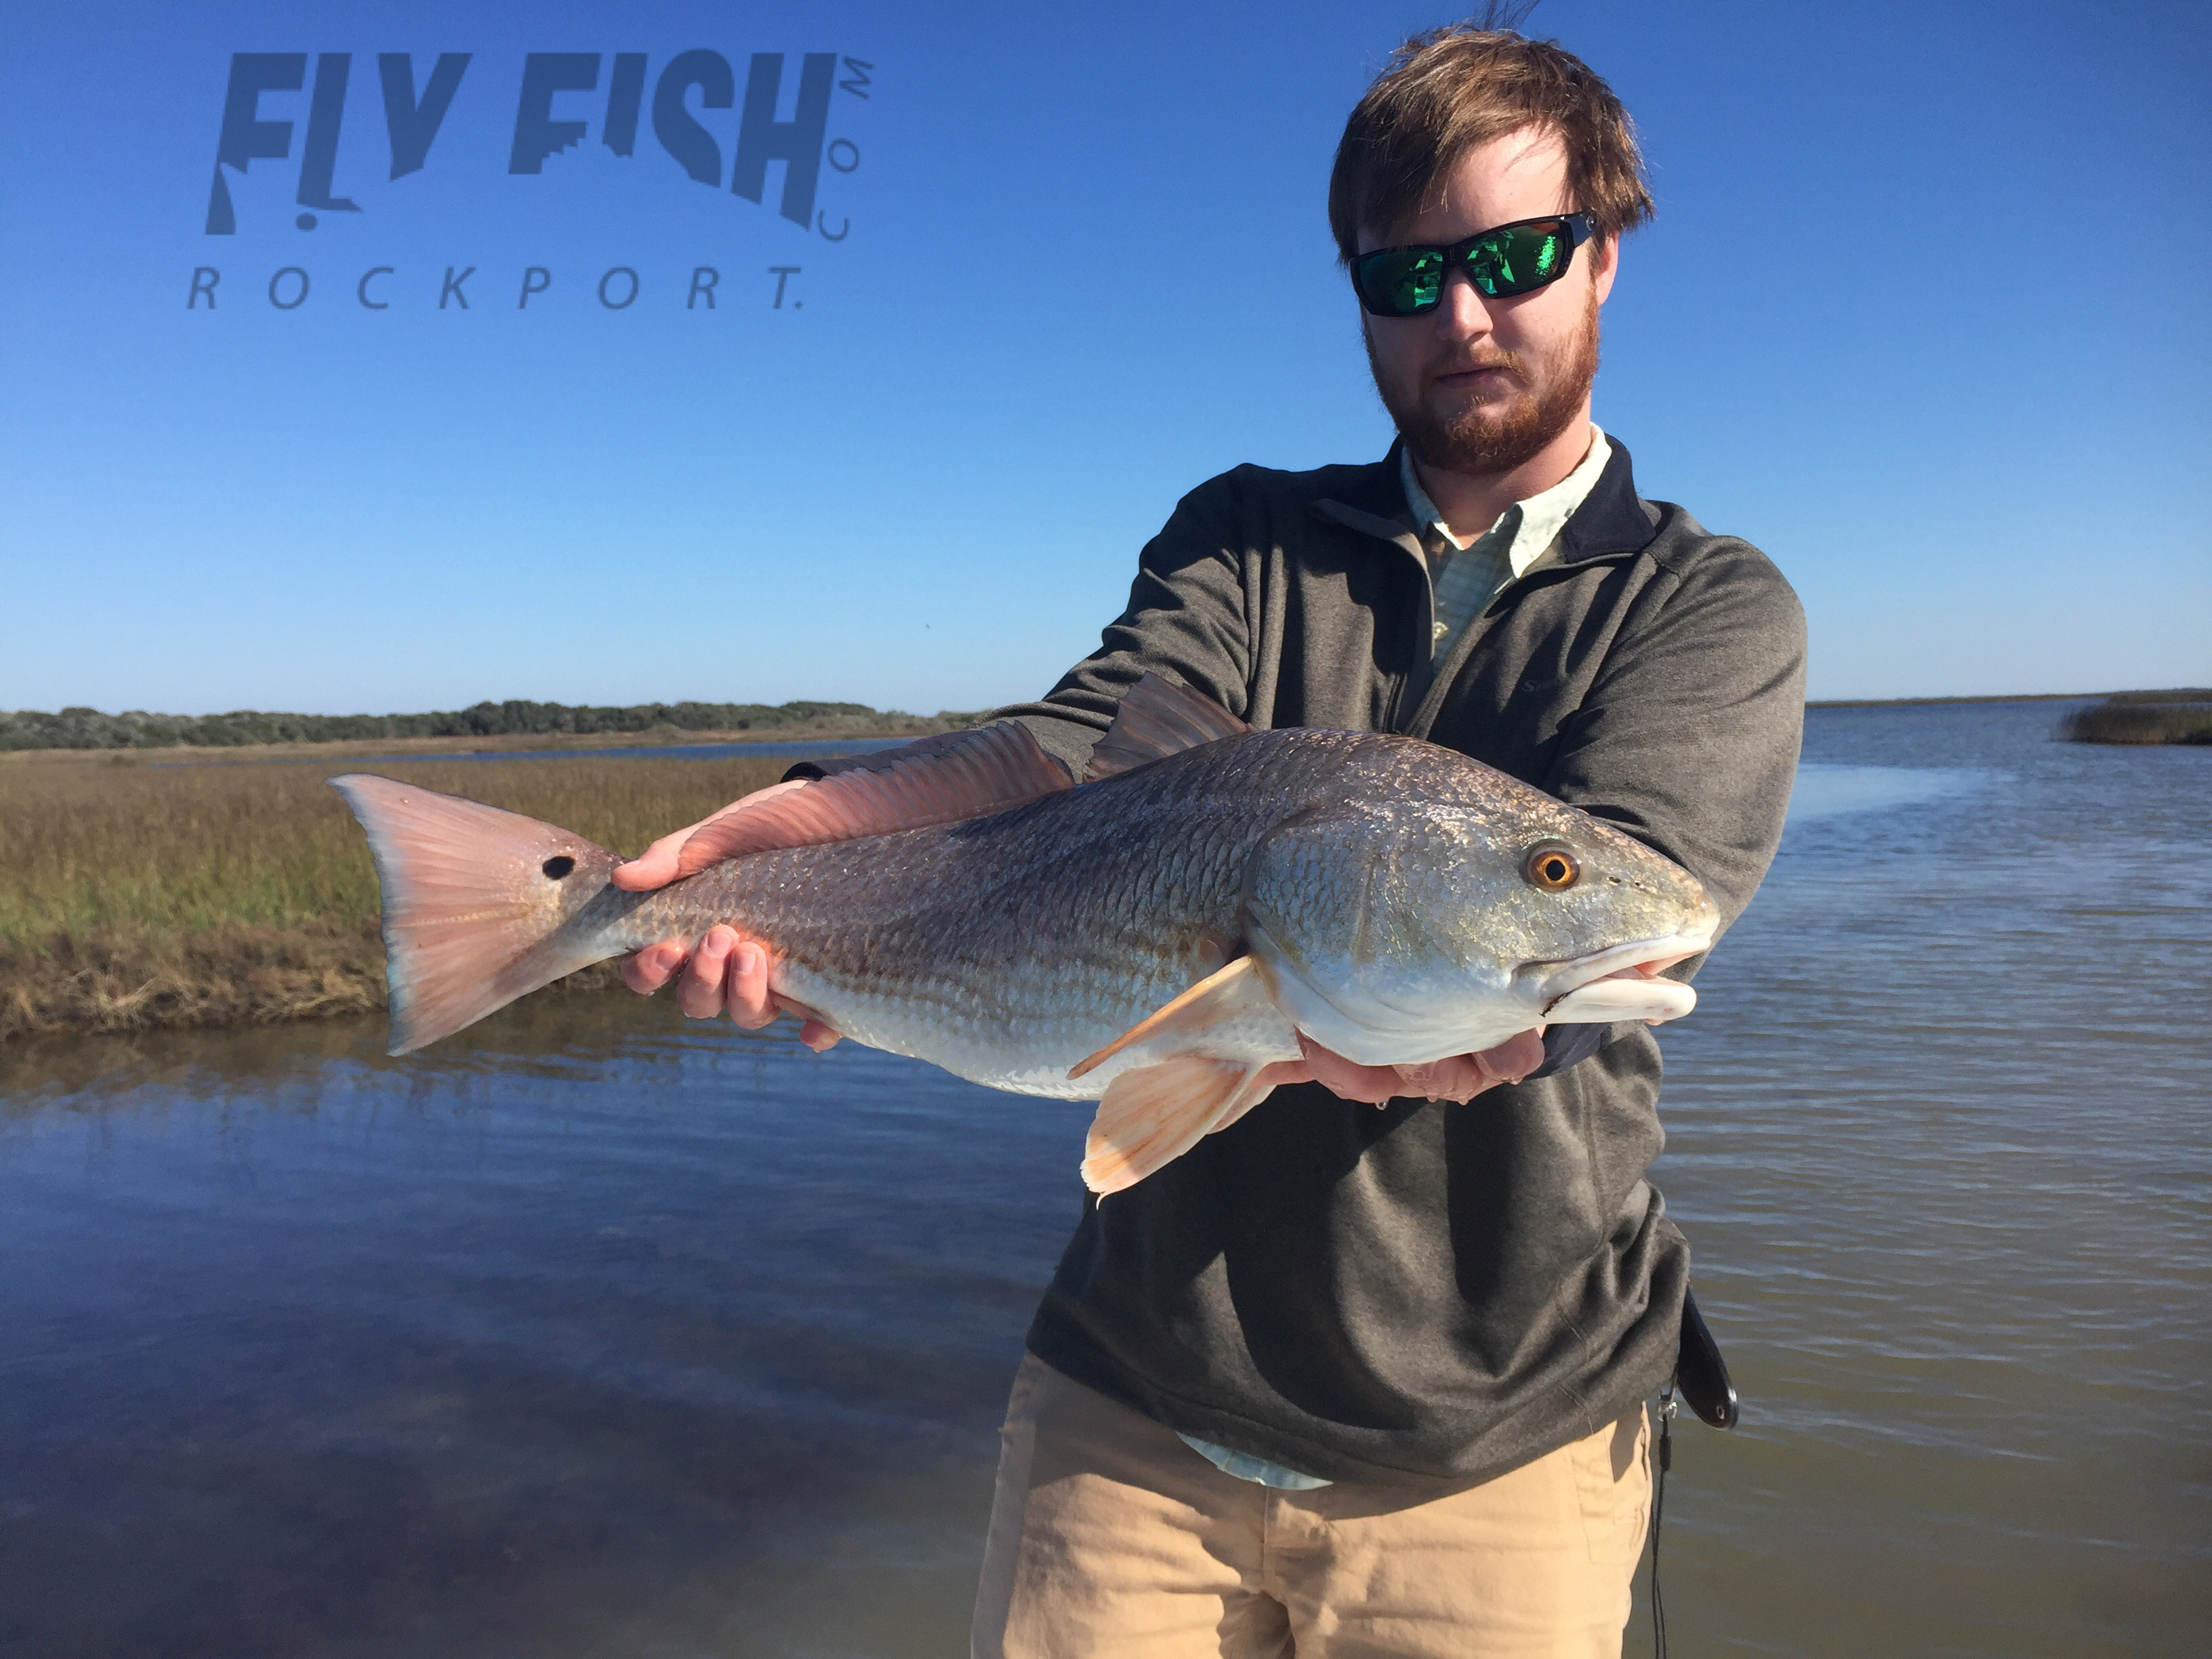 Rockport fishing report january 4th 2016 fly fish for Rockport texas fishing report